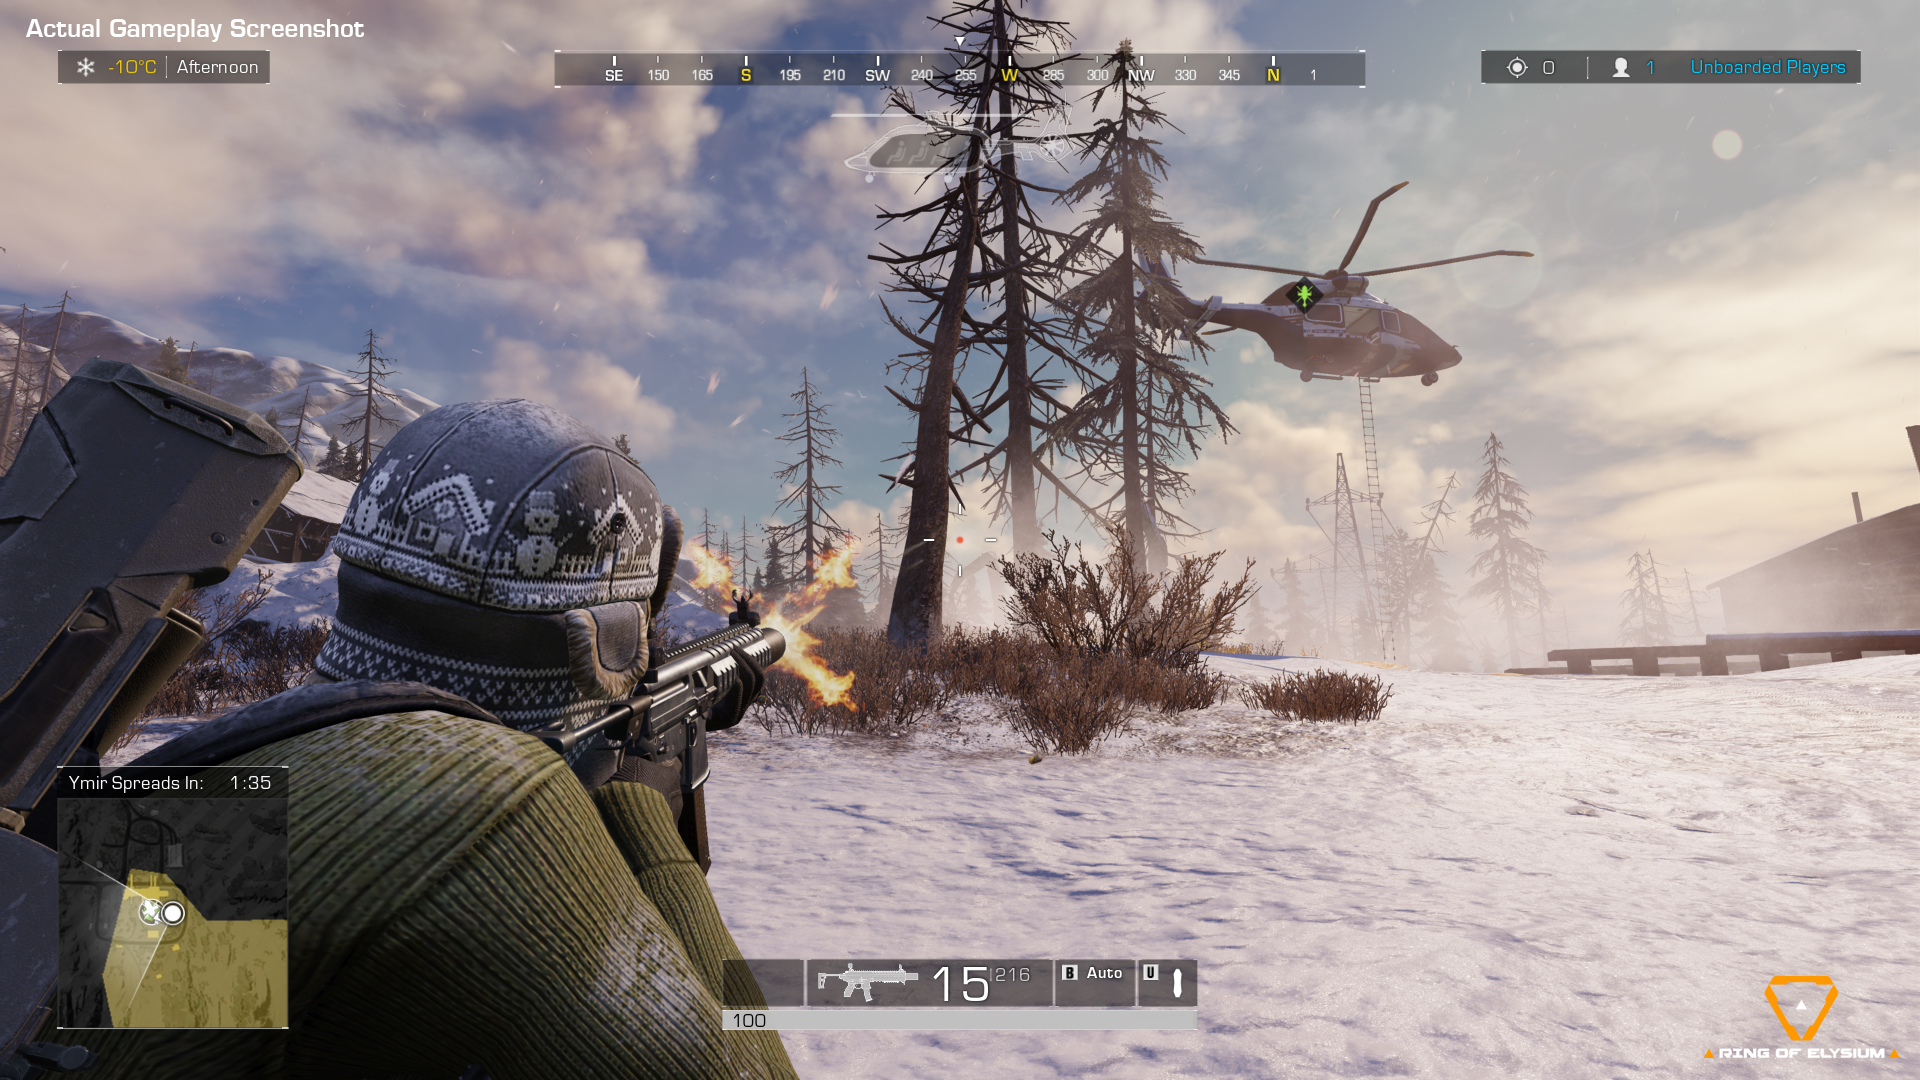 Photo of Ring of Elysium the Adventurer pass Season 1 comes with the November Update